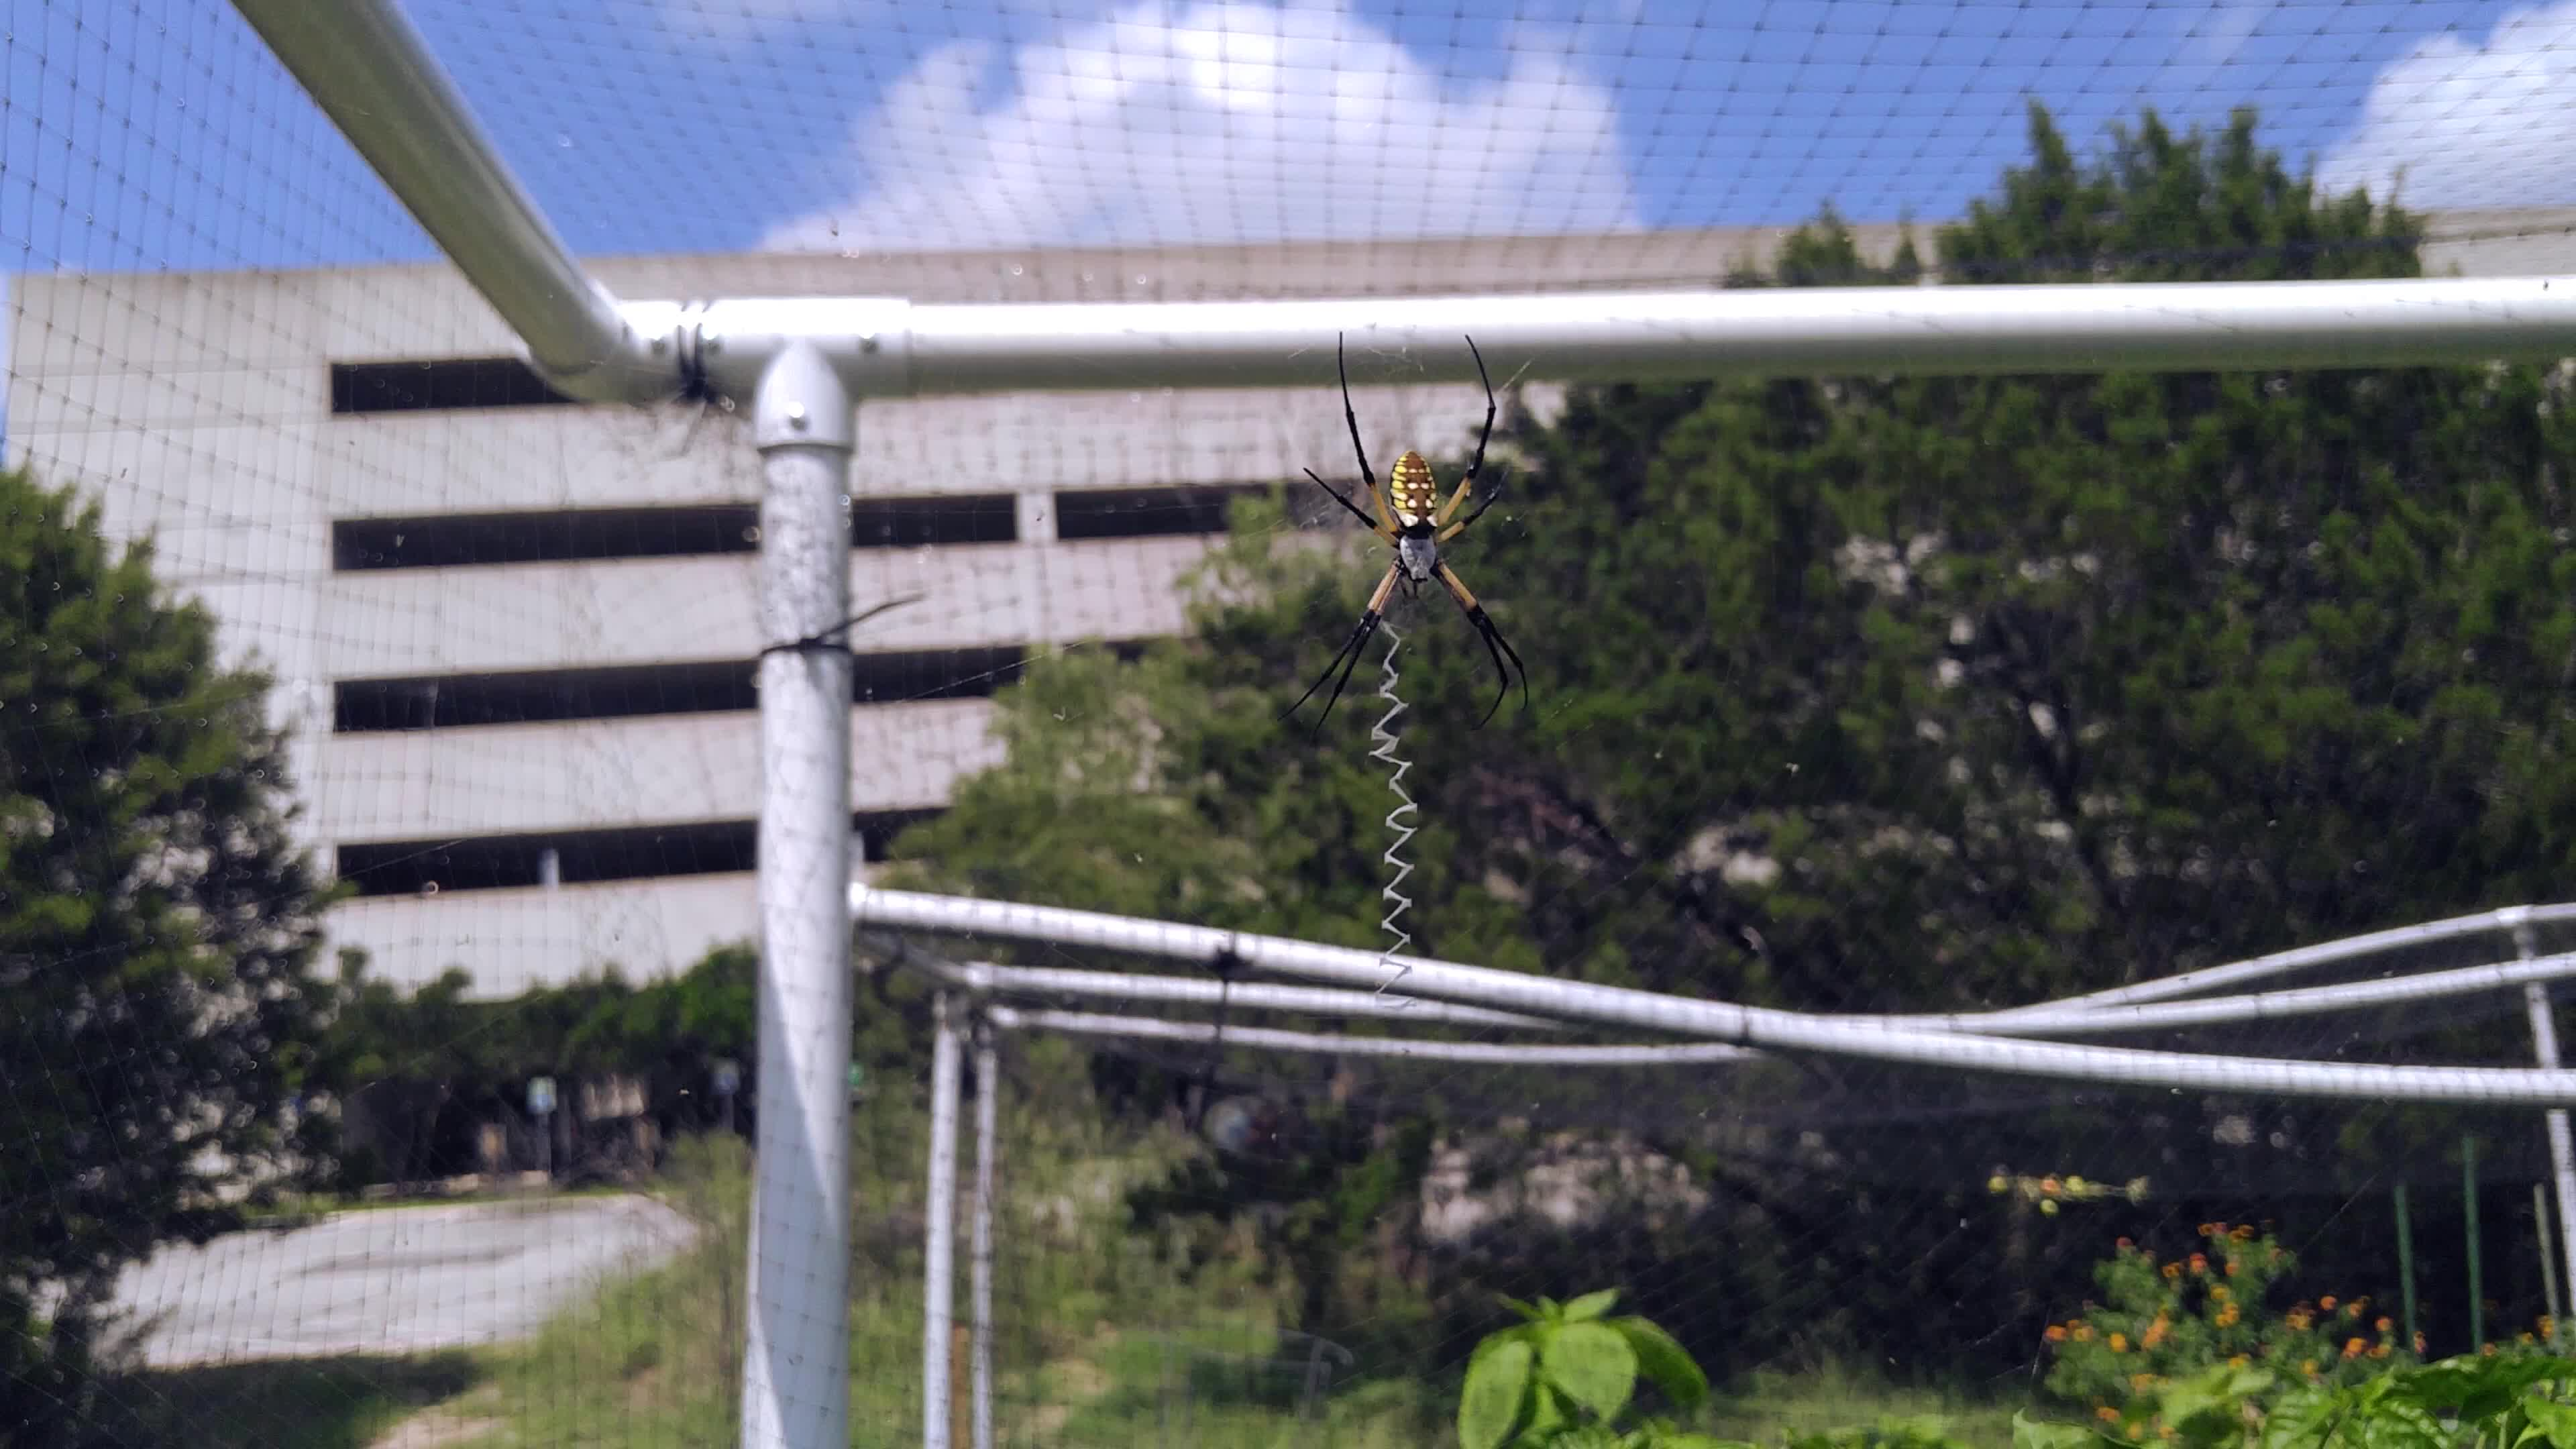 spider, Yellow garden spiderbro (Argiope aurantia) quickly wrapping up a grasshopper GIFs